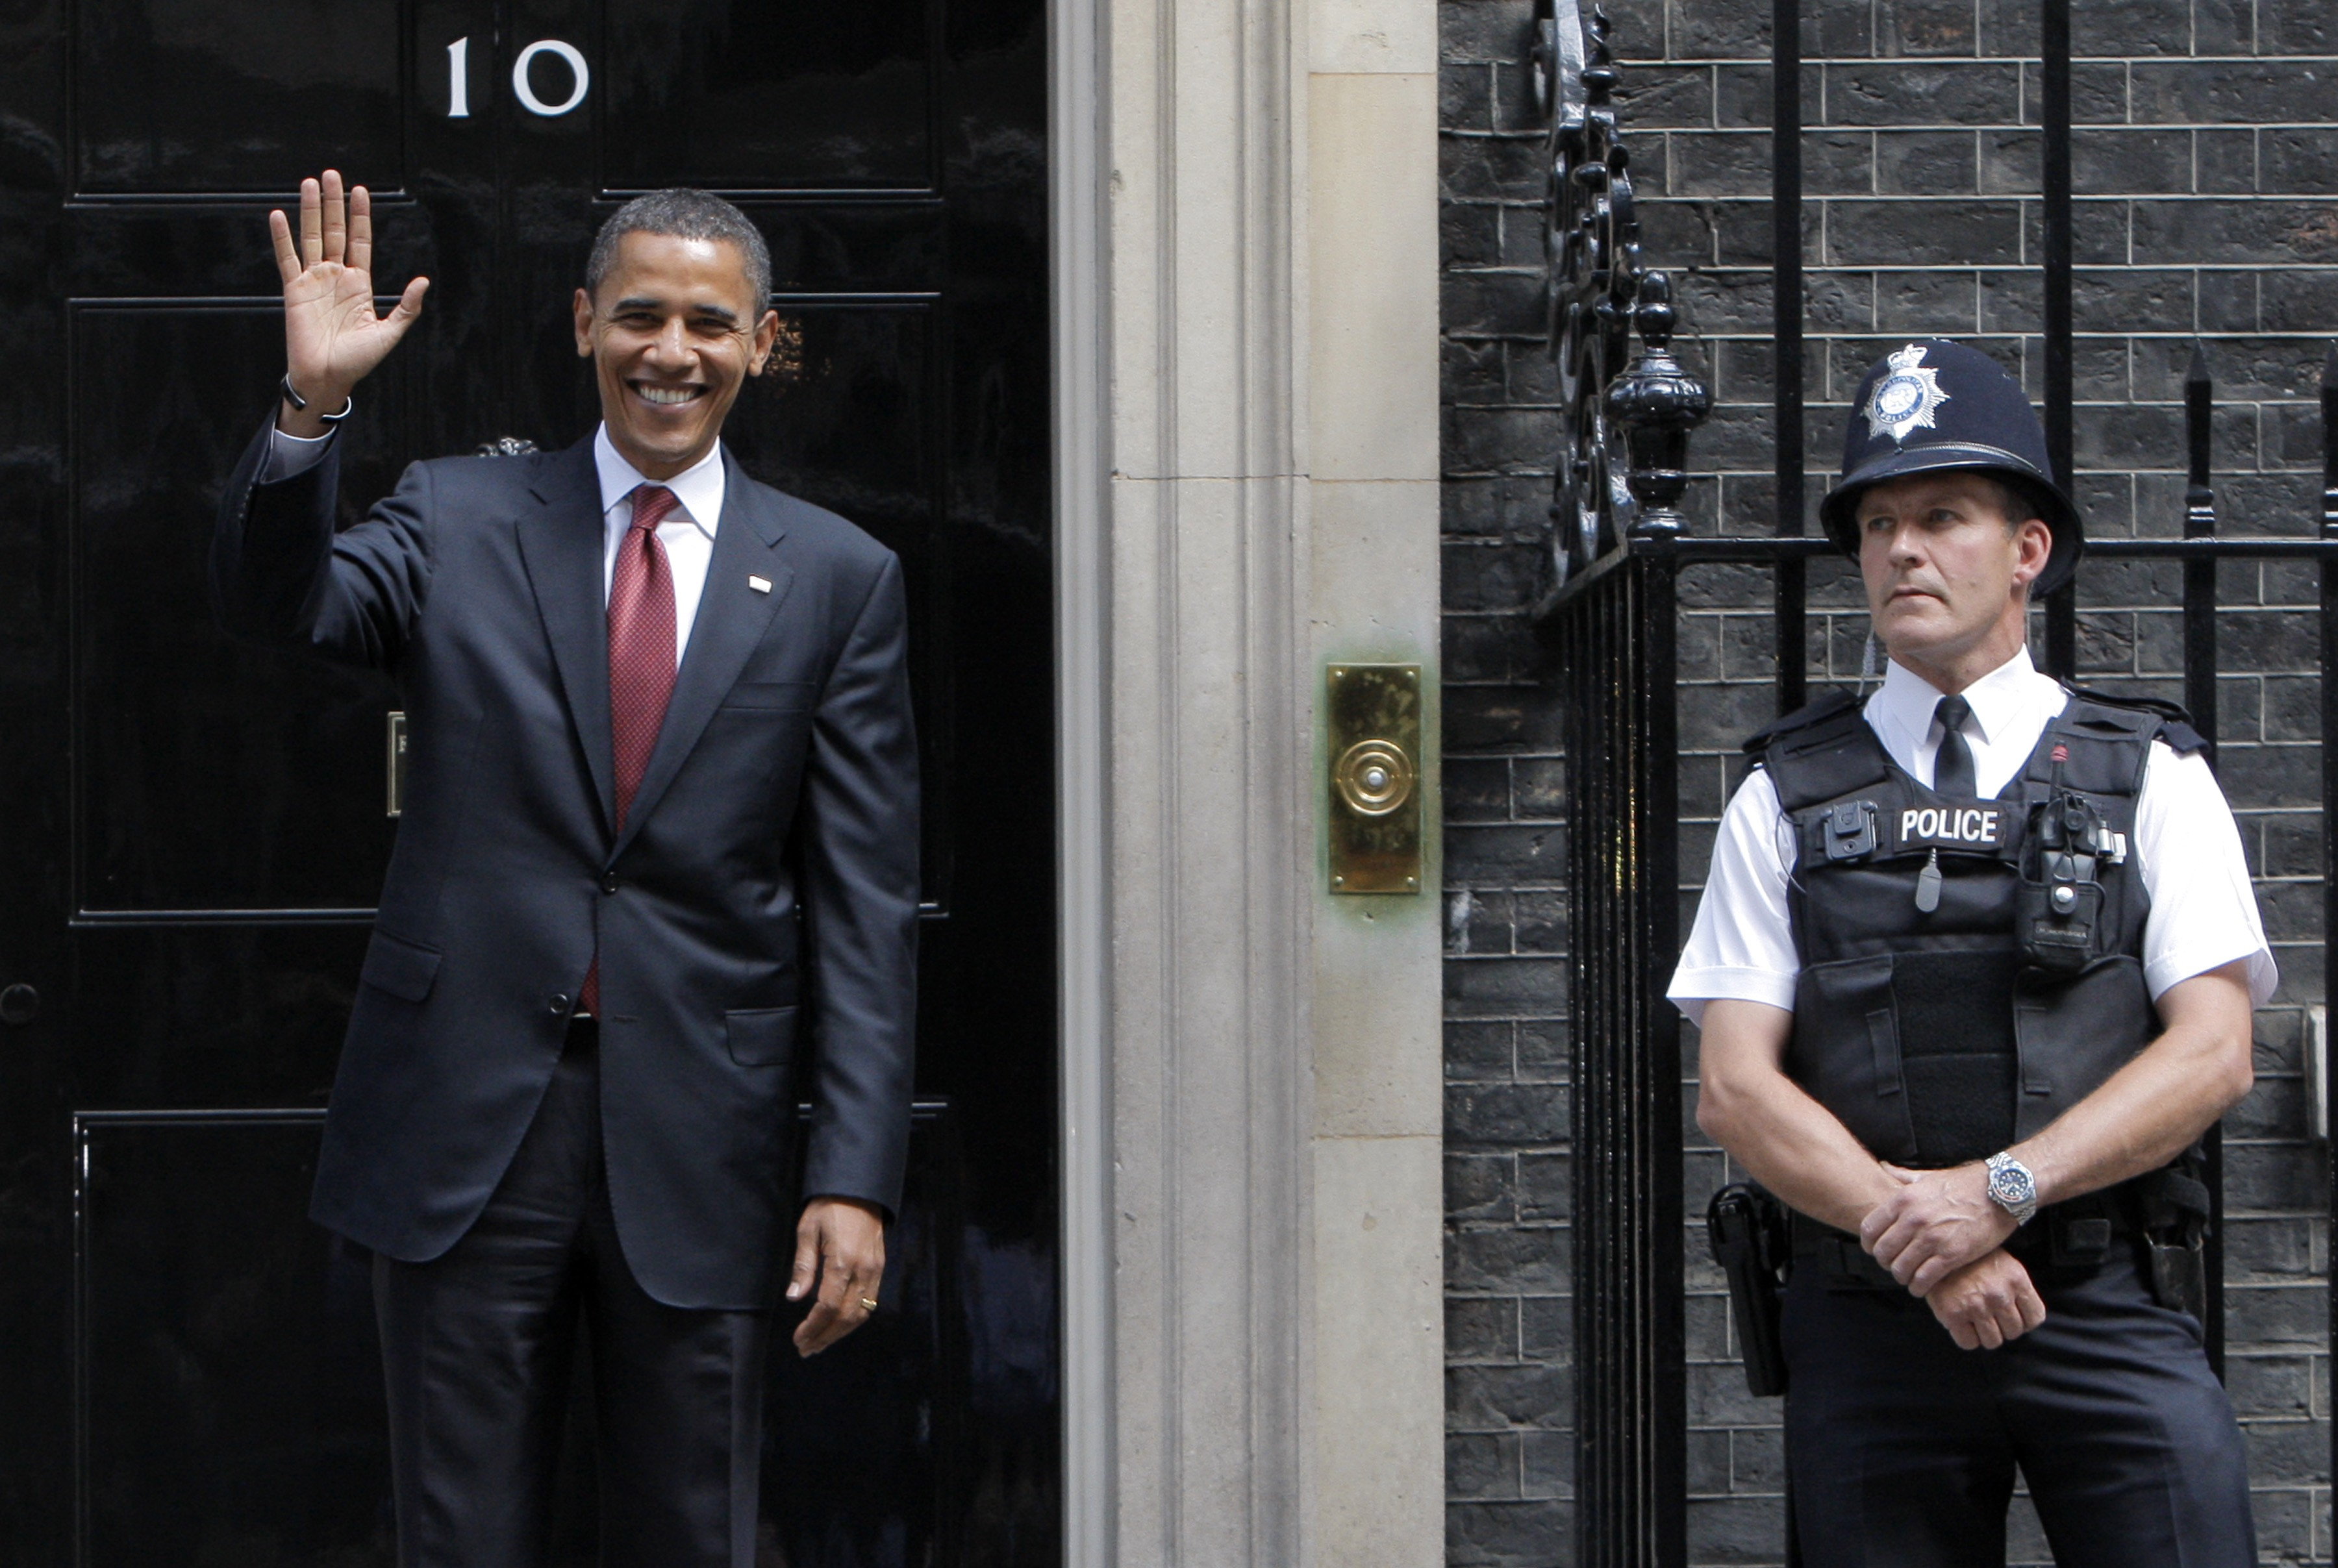 Obama visits Downing St. 2008